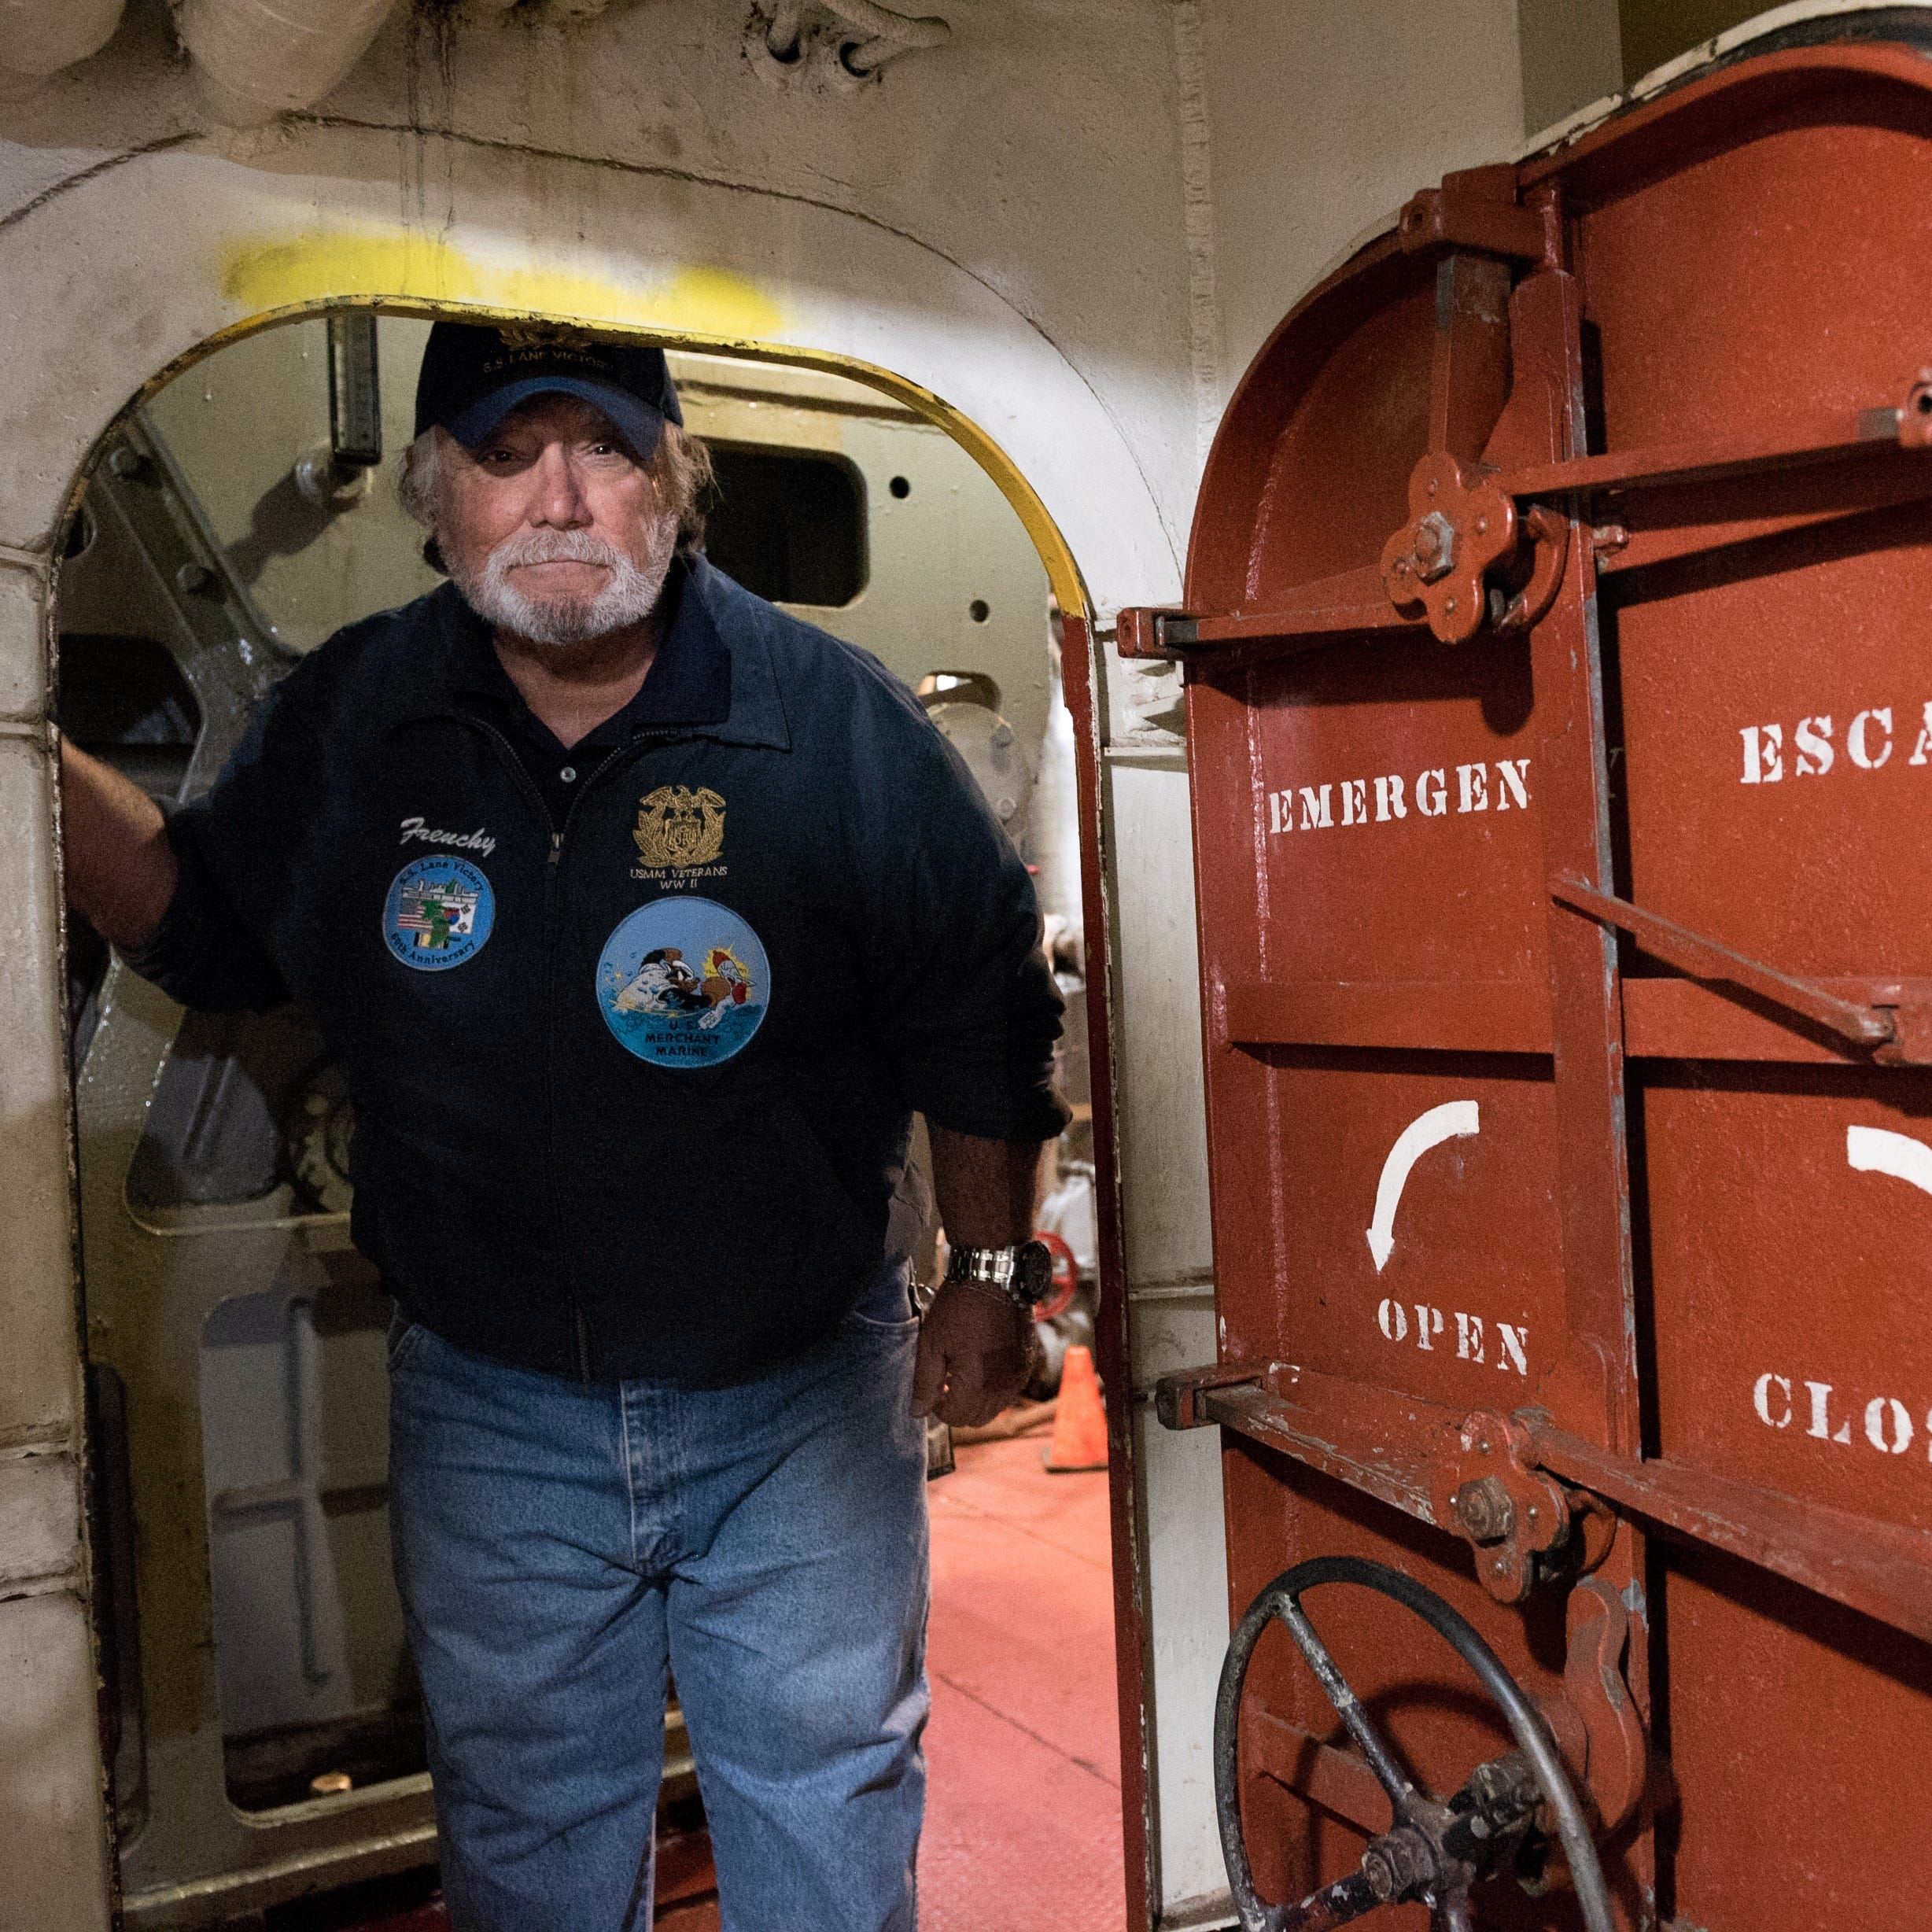 They fought the Nazis, now they're fighting rust: Veterans struggle to save World War II ships